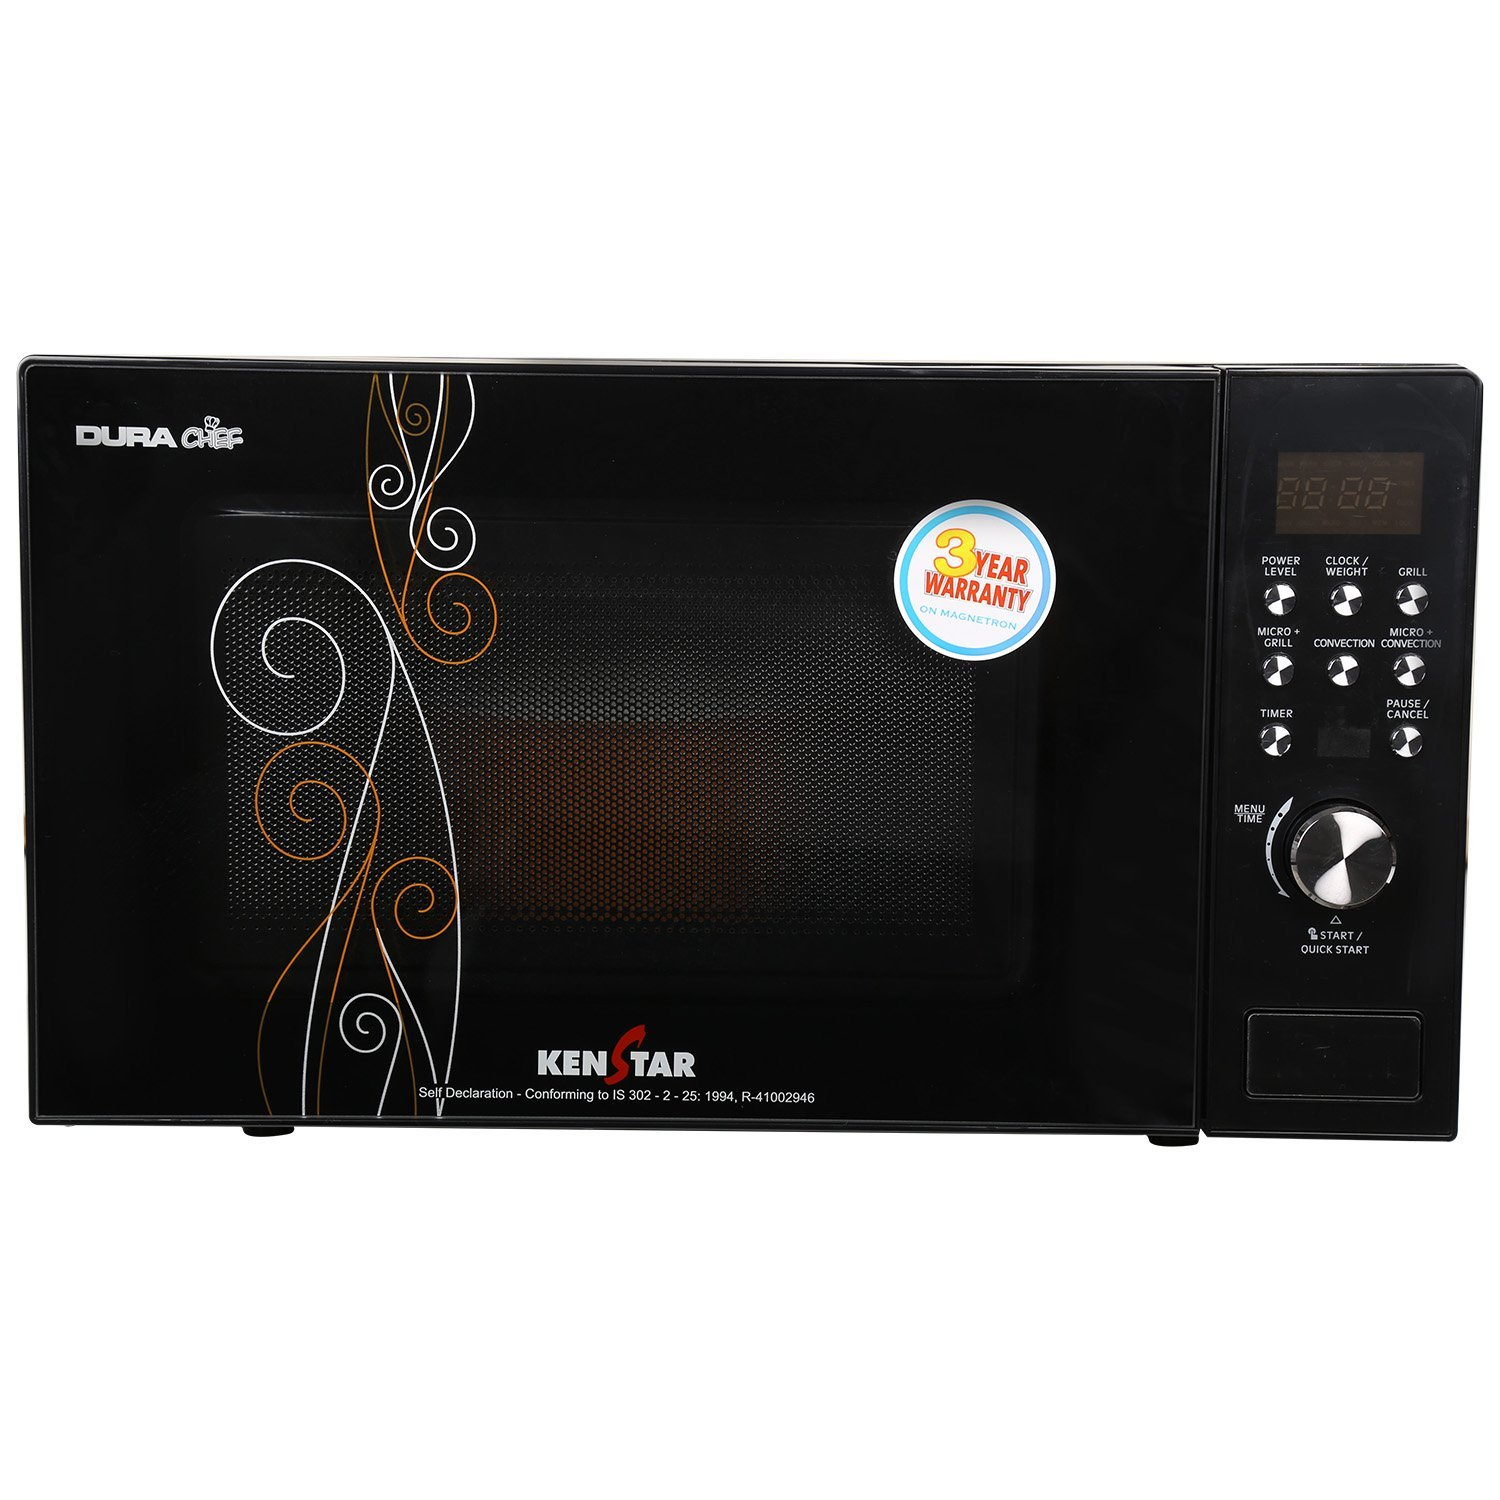 Kenstar 20 L Convection Microwave Oven (KJ20CBG101, Black)